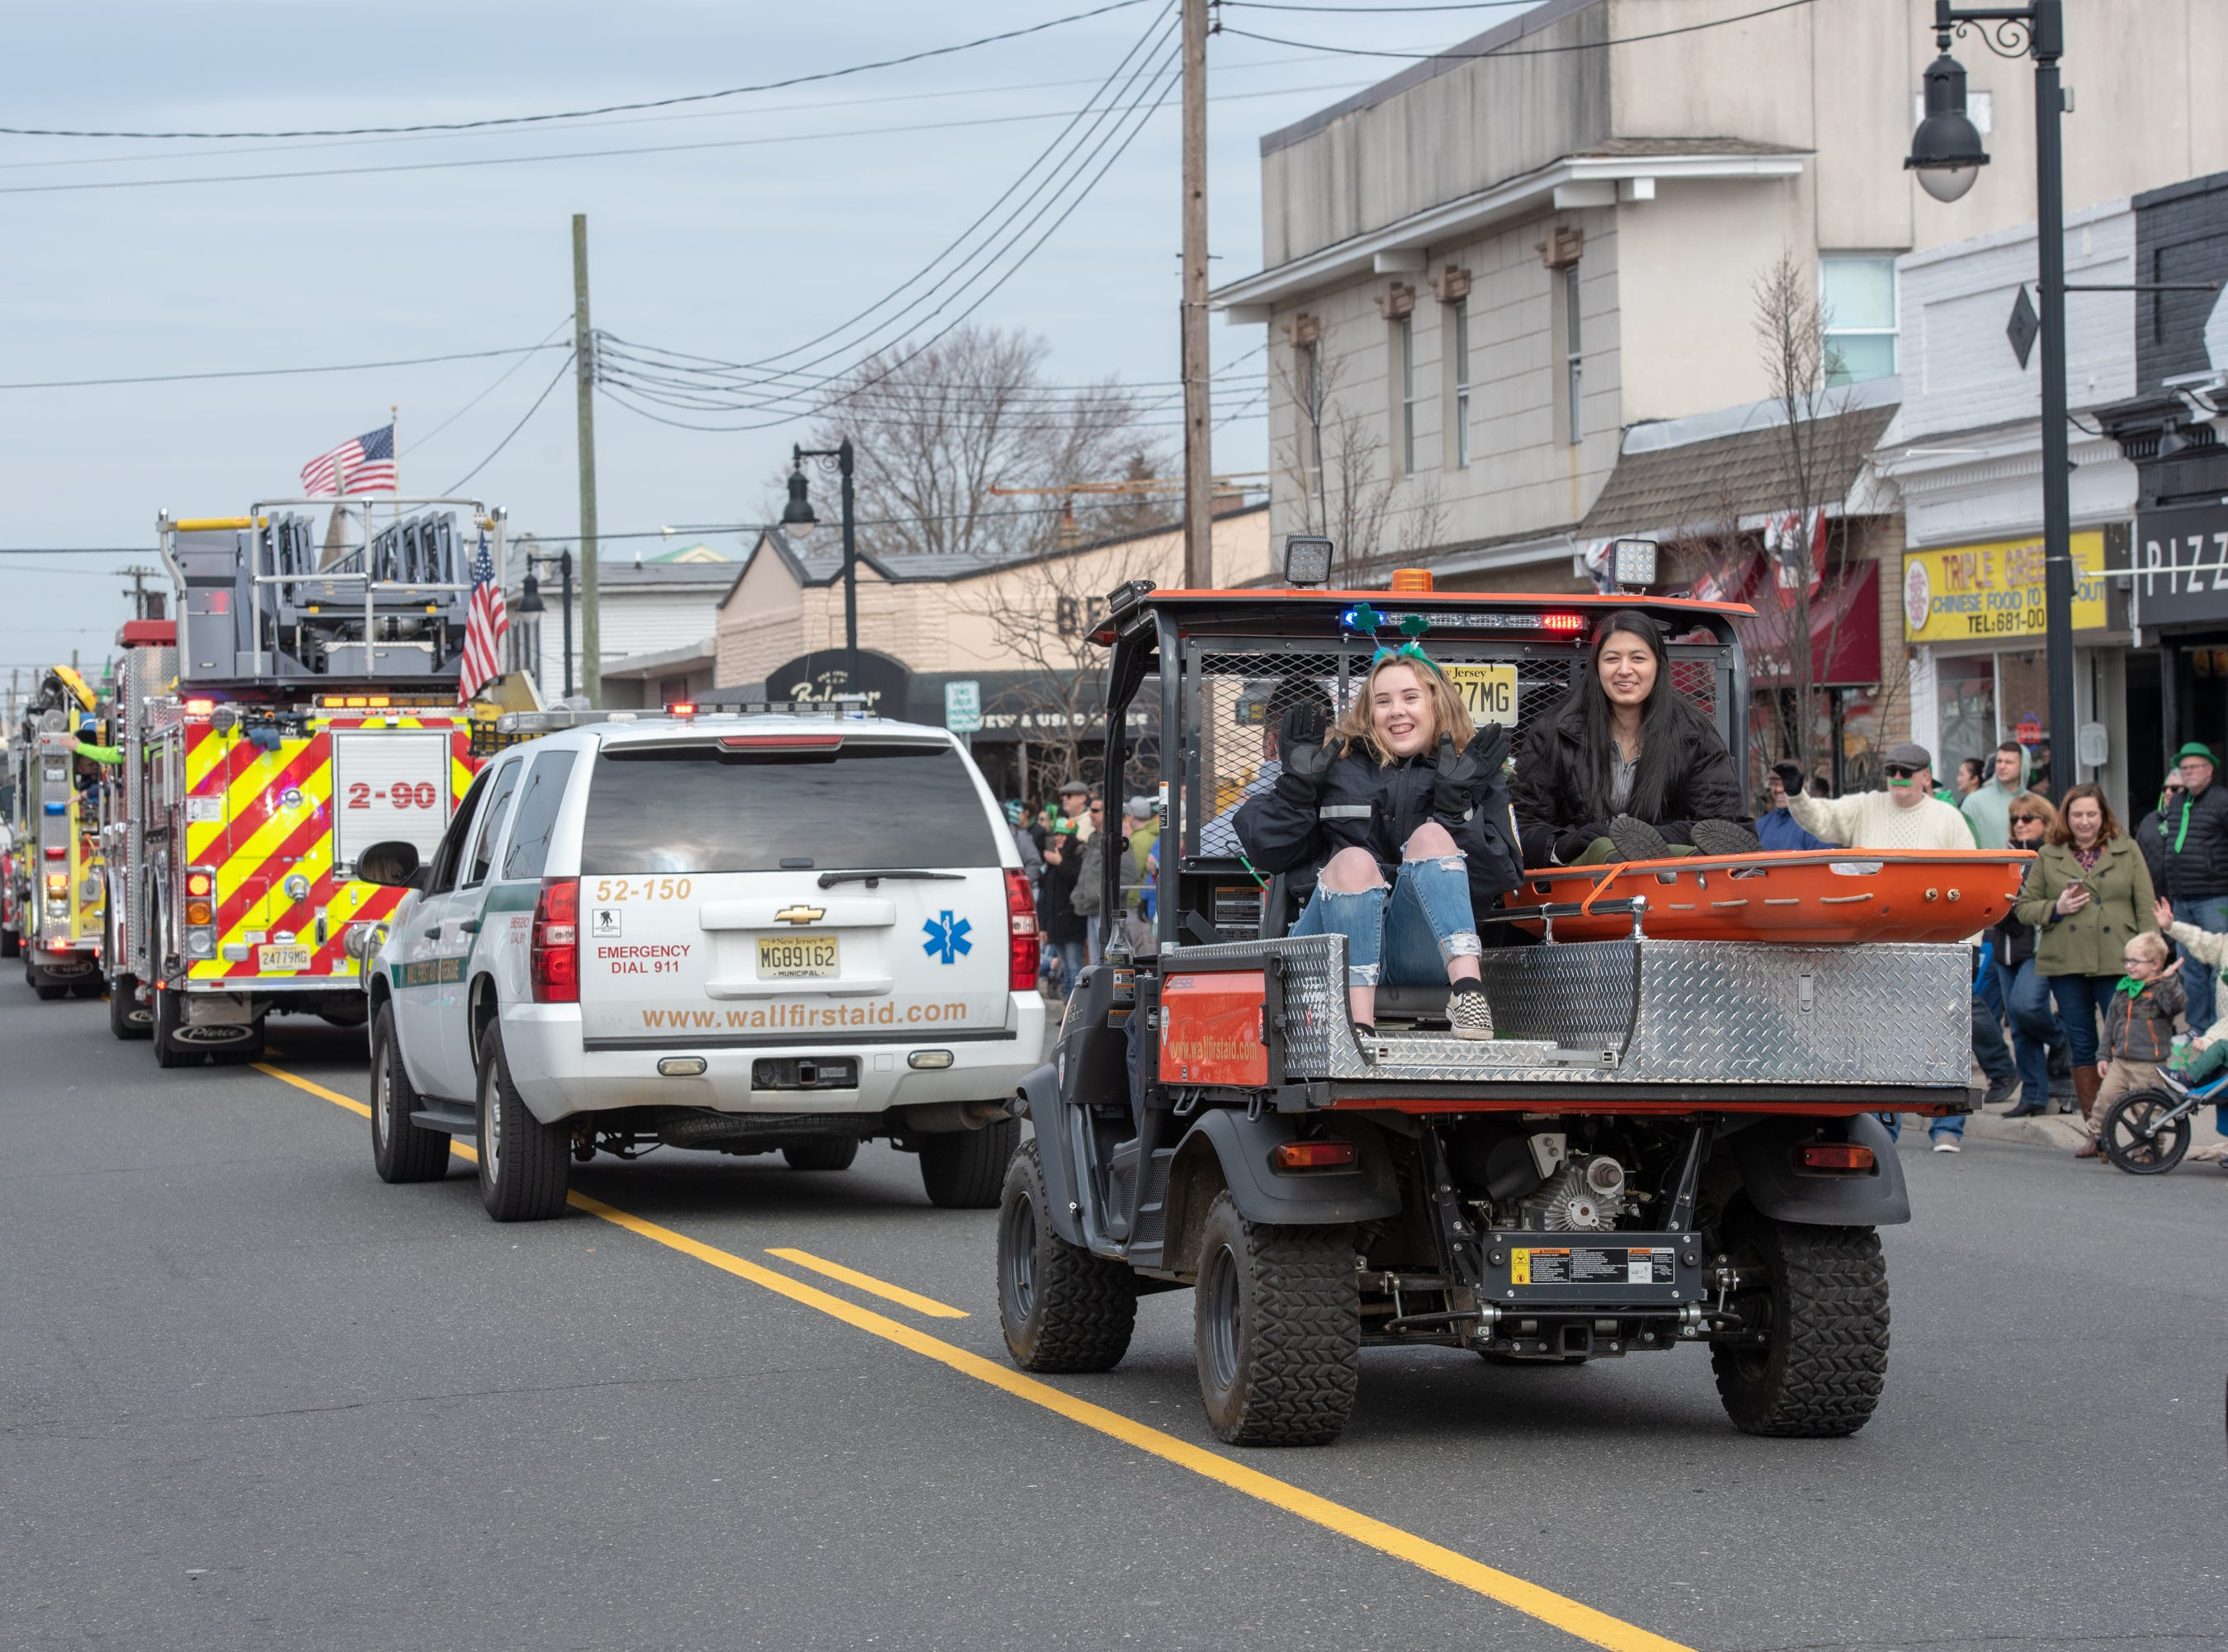 The 46th annual Belmar/Lake Como St. Patrick's Day Parade was held in Belmar on March 3, 2019.